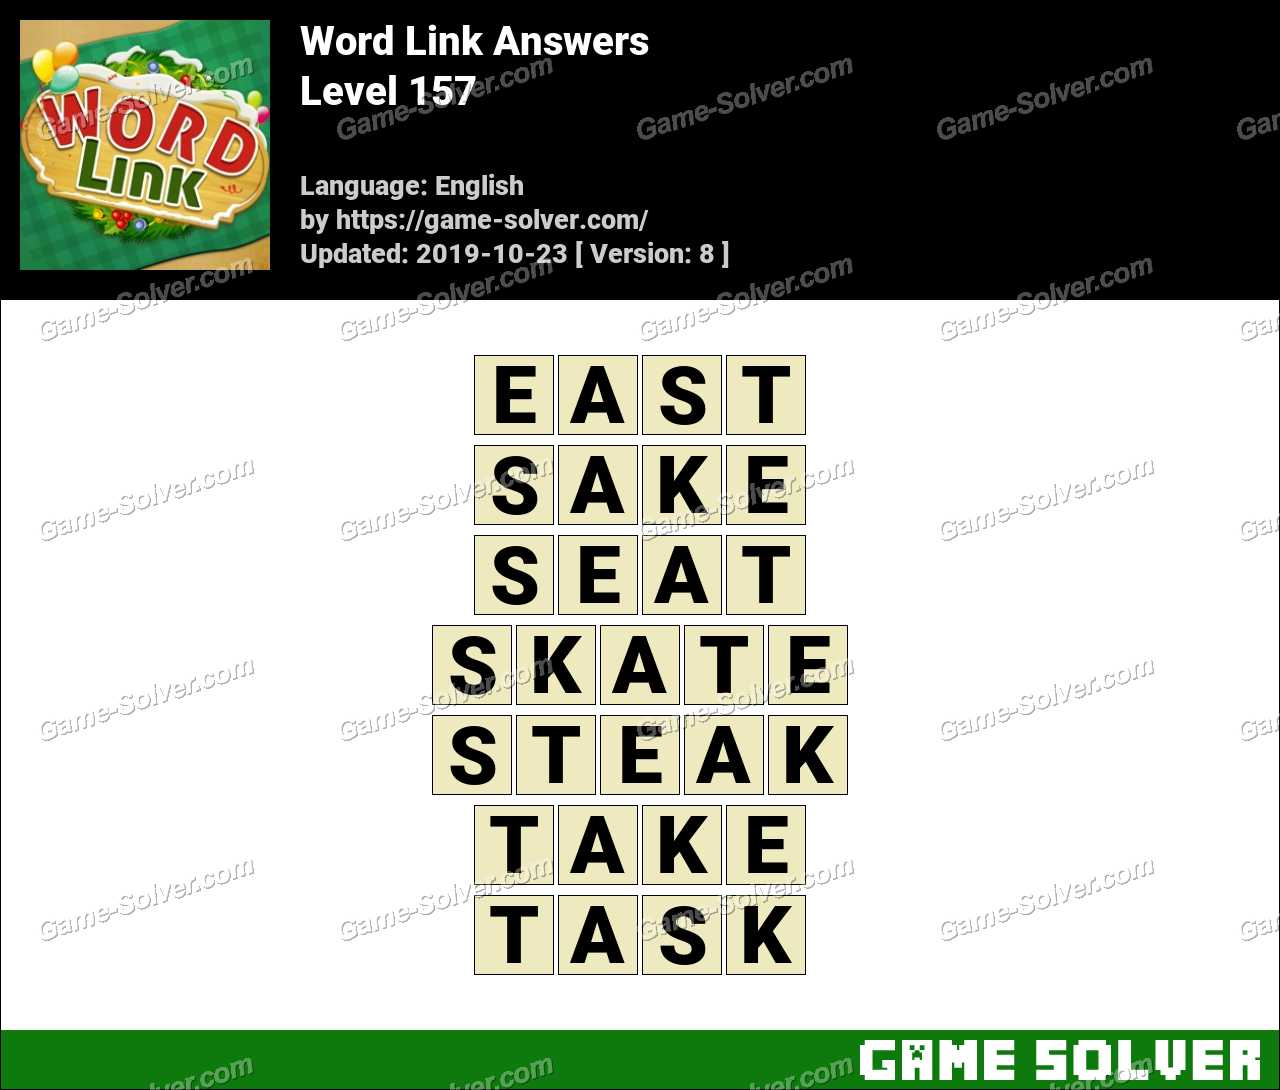 Word Link Level 157 Answers